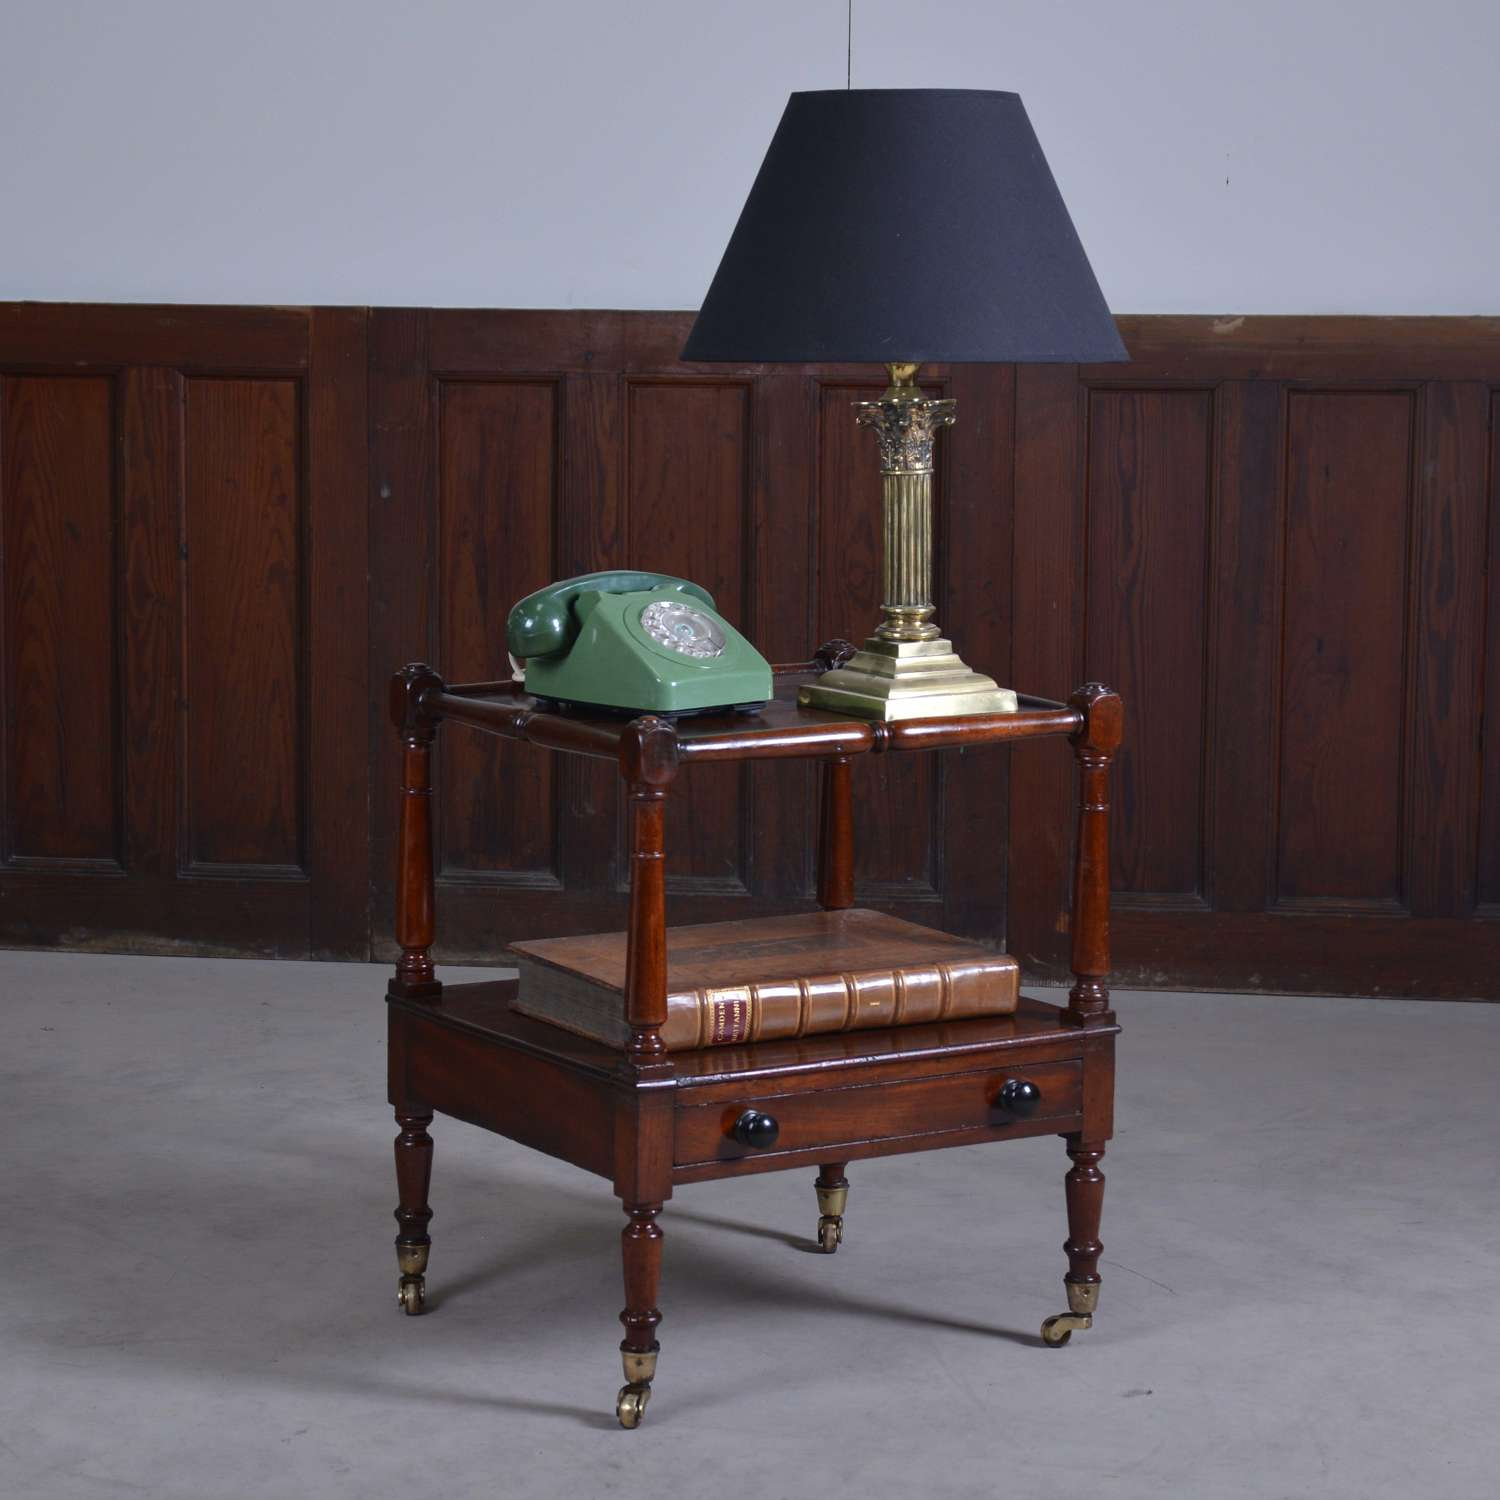 Mahogany whatnot, or bedside table